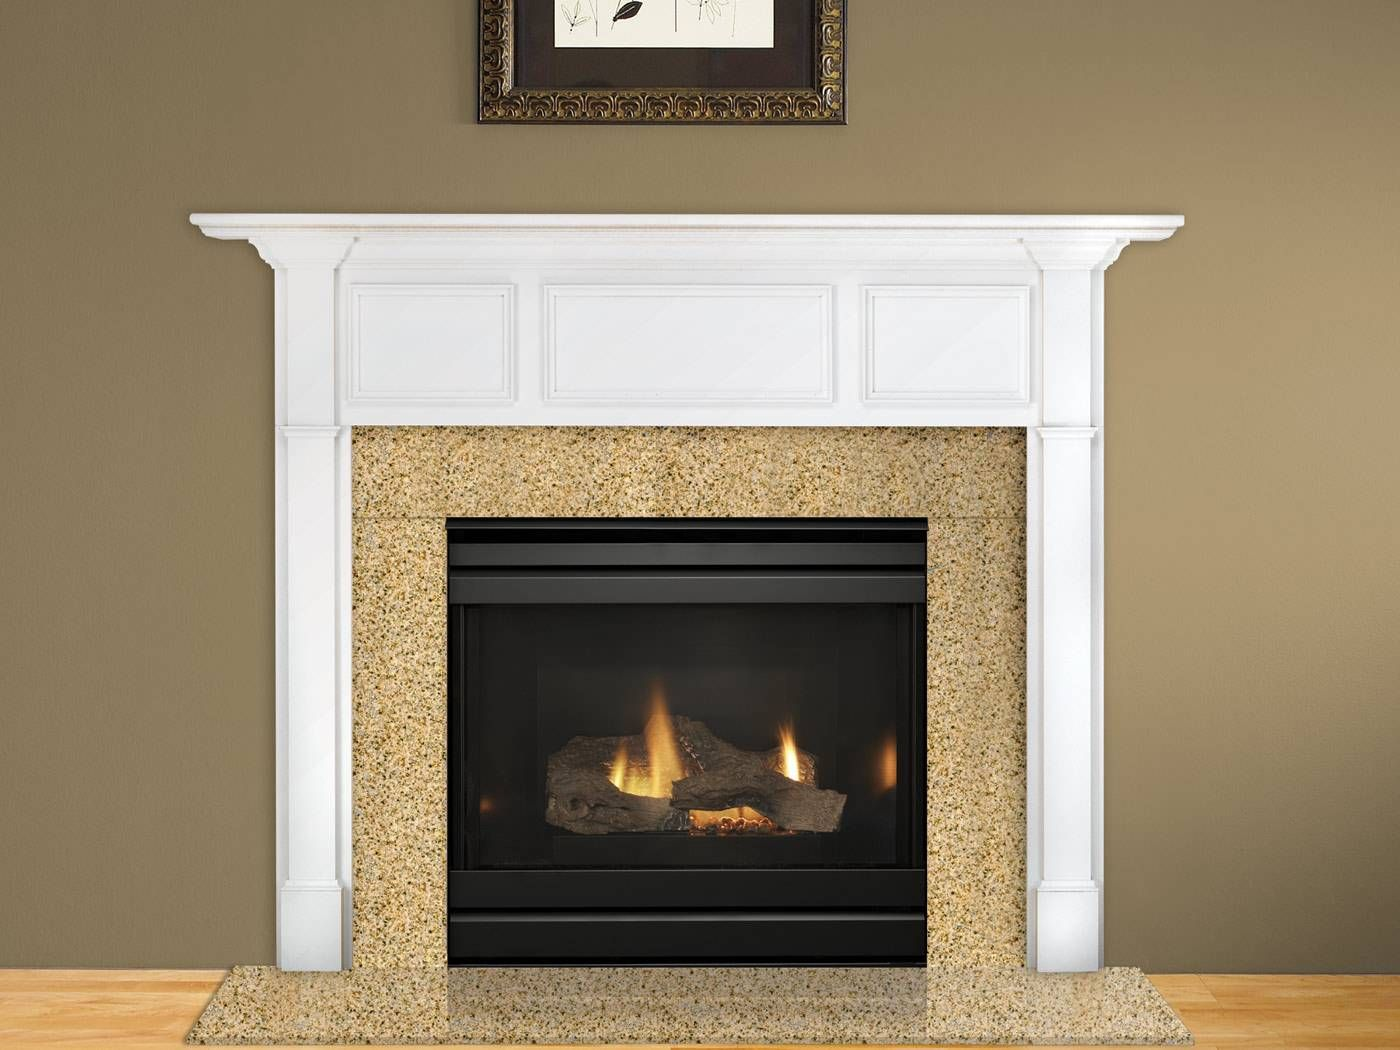 Adding A Fireplace Adding A Fireplace To A House Artificial Fireplace Best Fireplace Insert Best Gas Fi Corner Gas Fireplace Gas Fireplace Artificial Fireplace